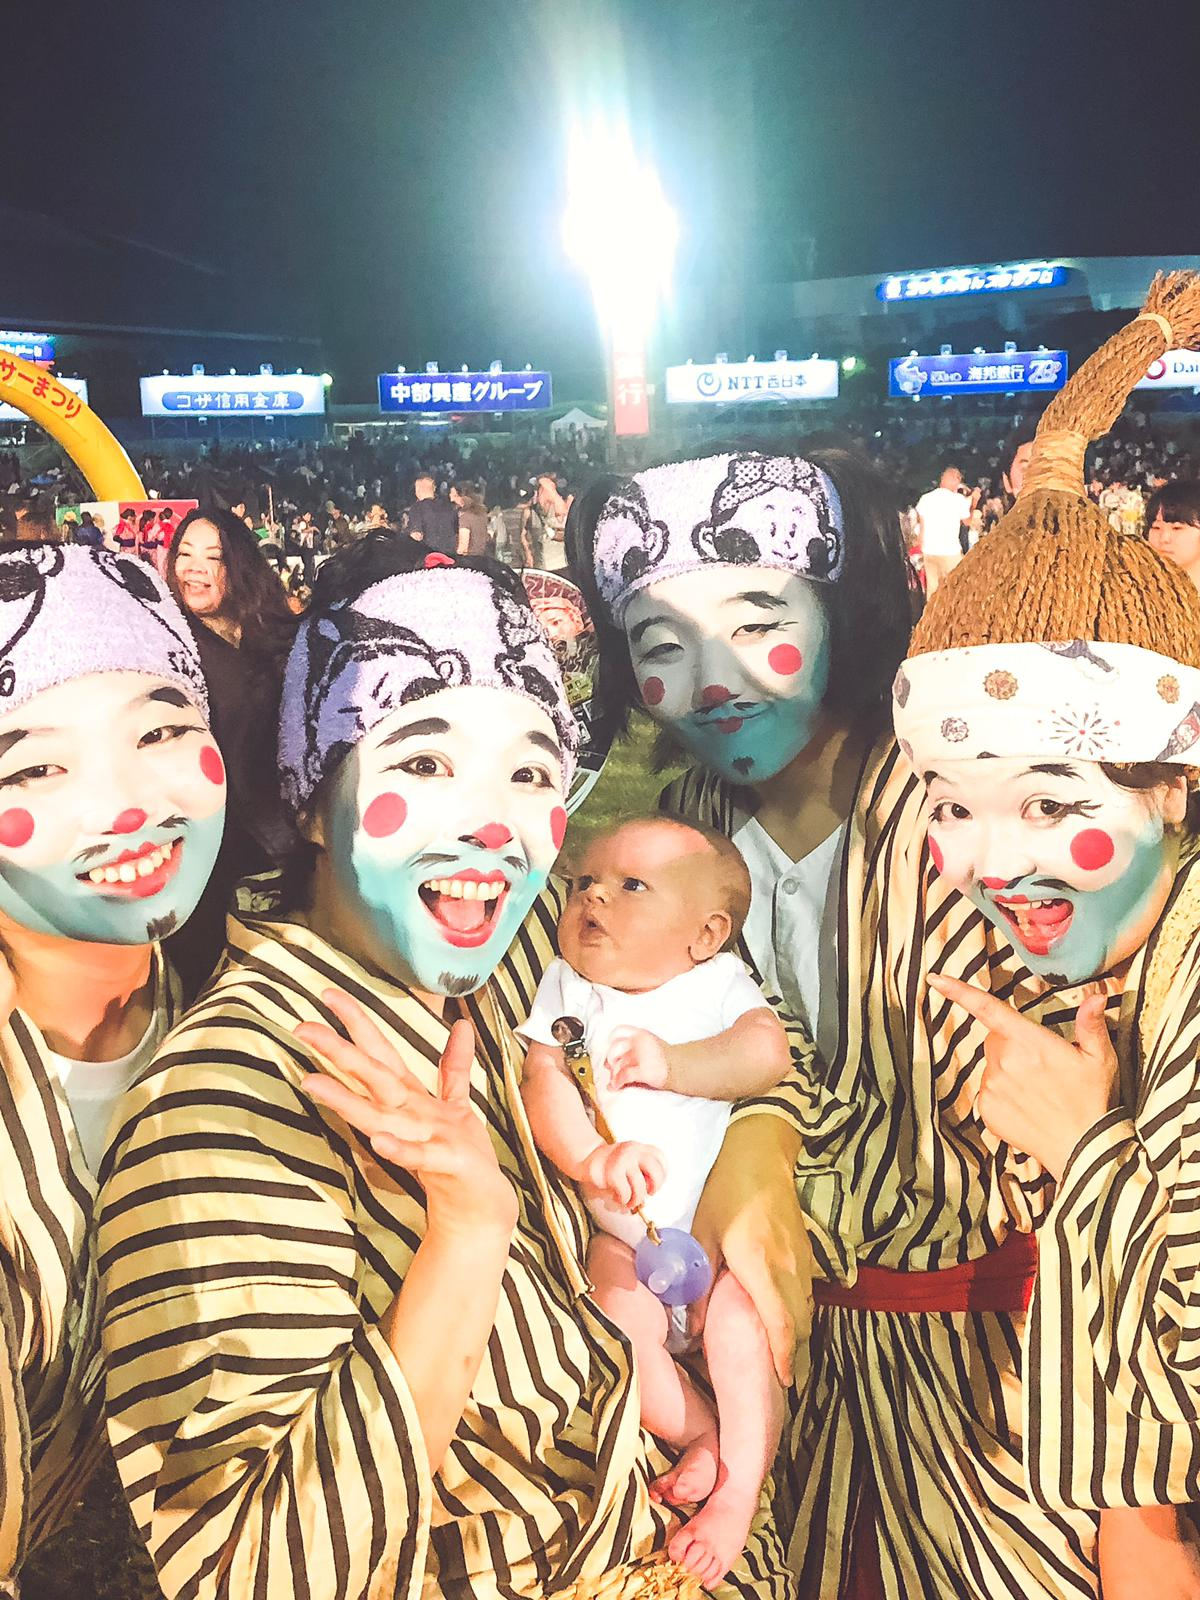 Confused baby and people in ossan makeup